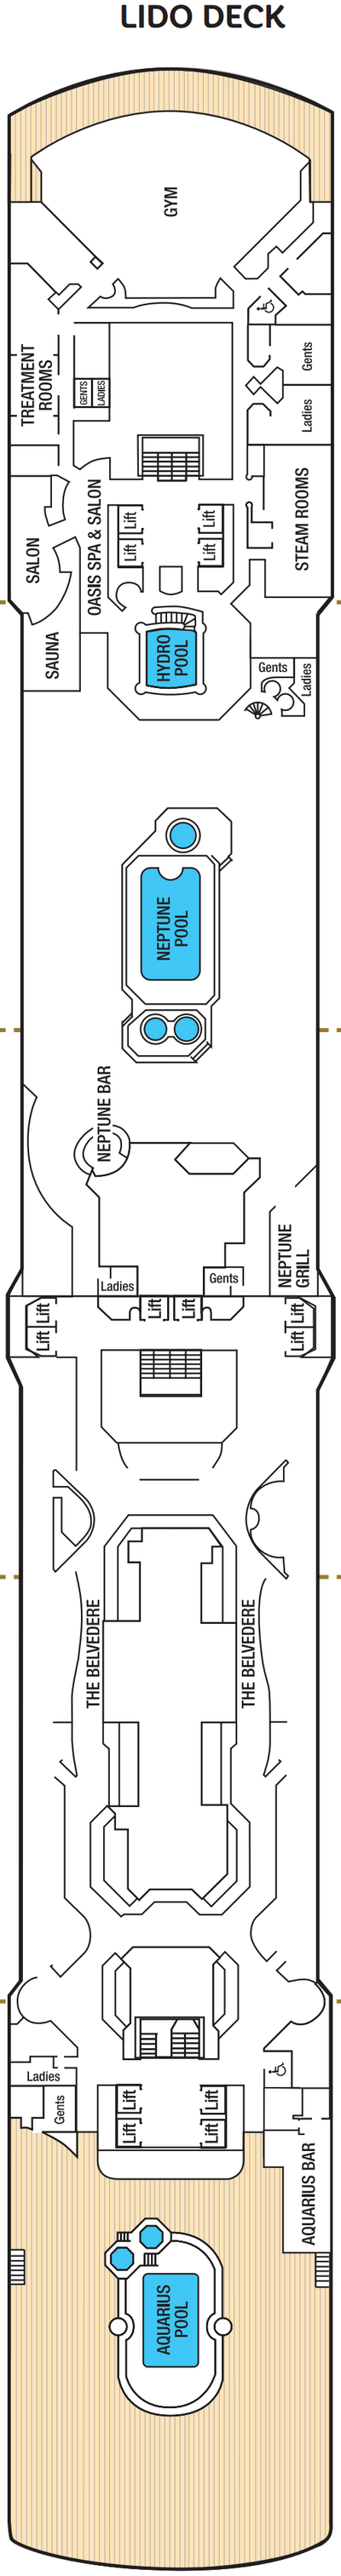 Arcadia Lido Deck layout